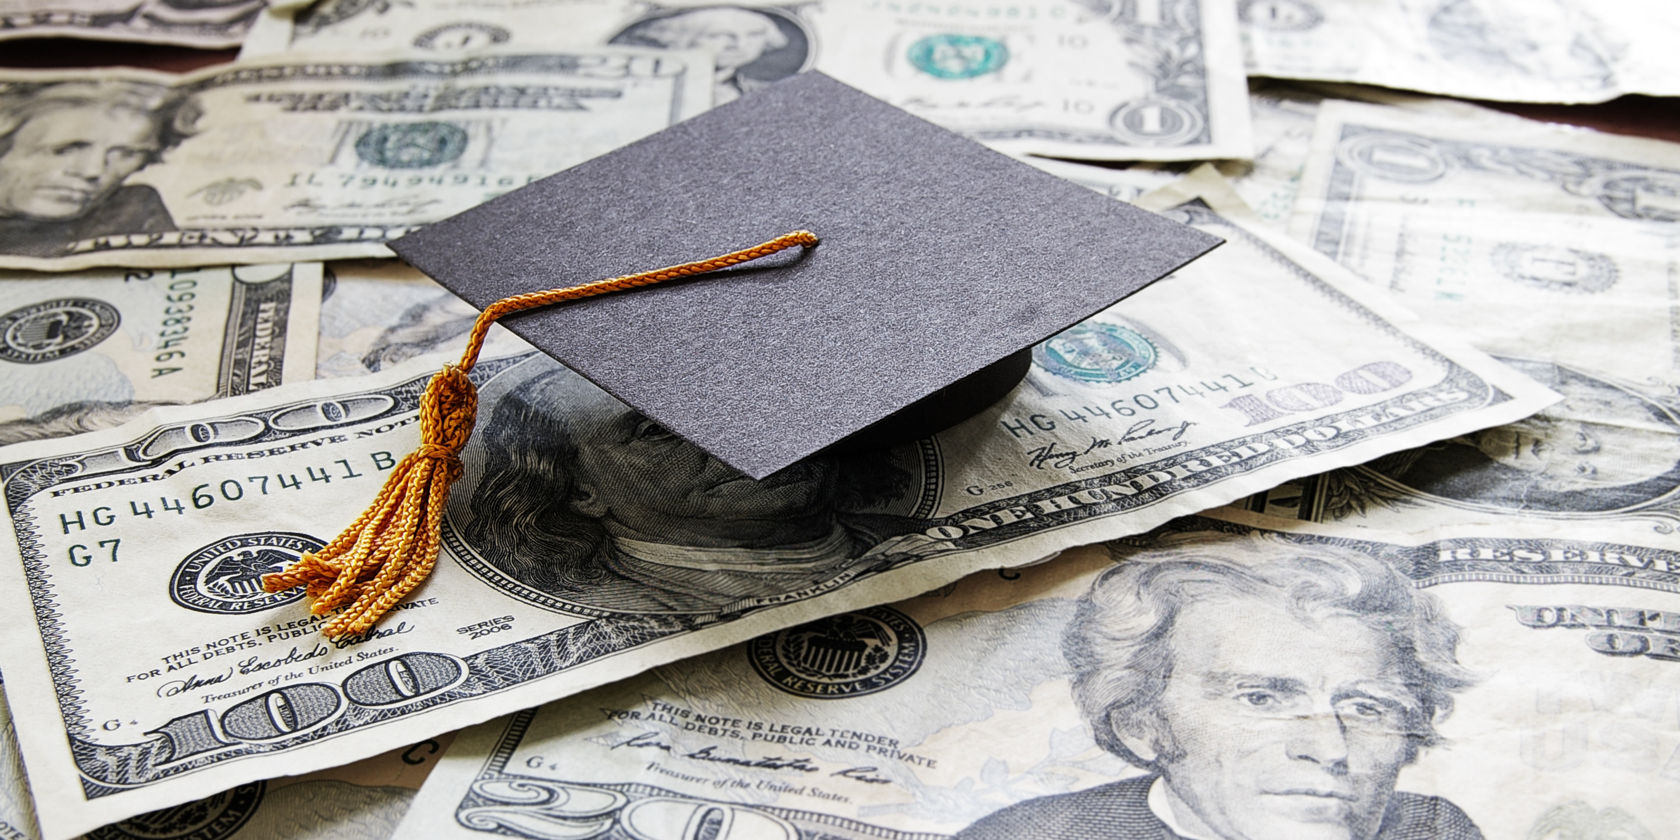 Should Parents or Kids Pay for College?